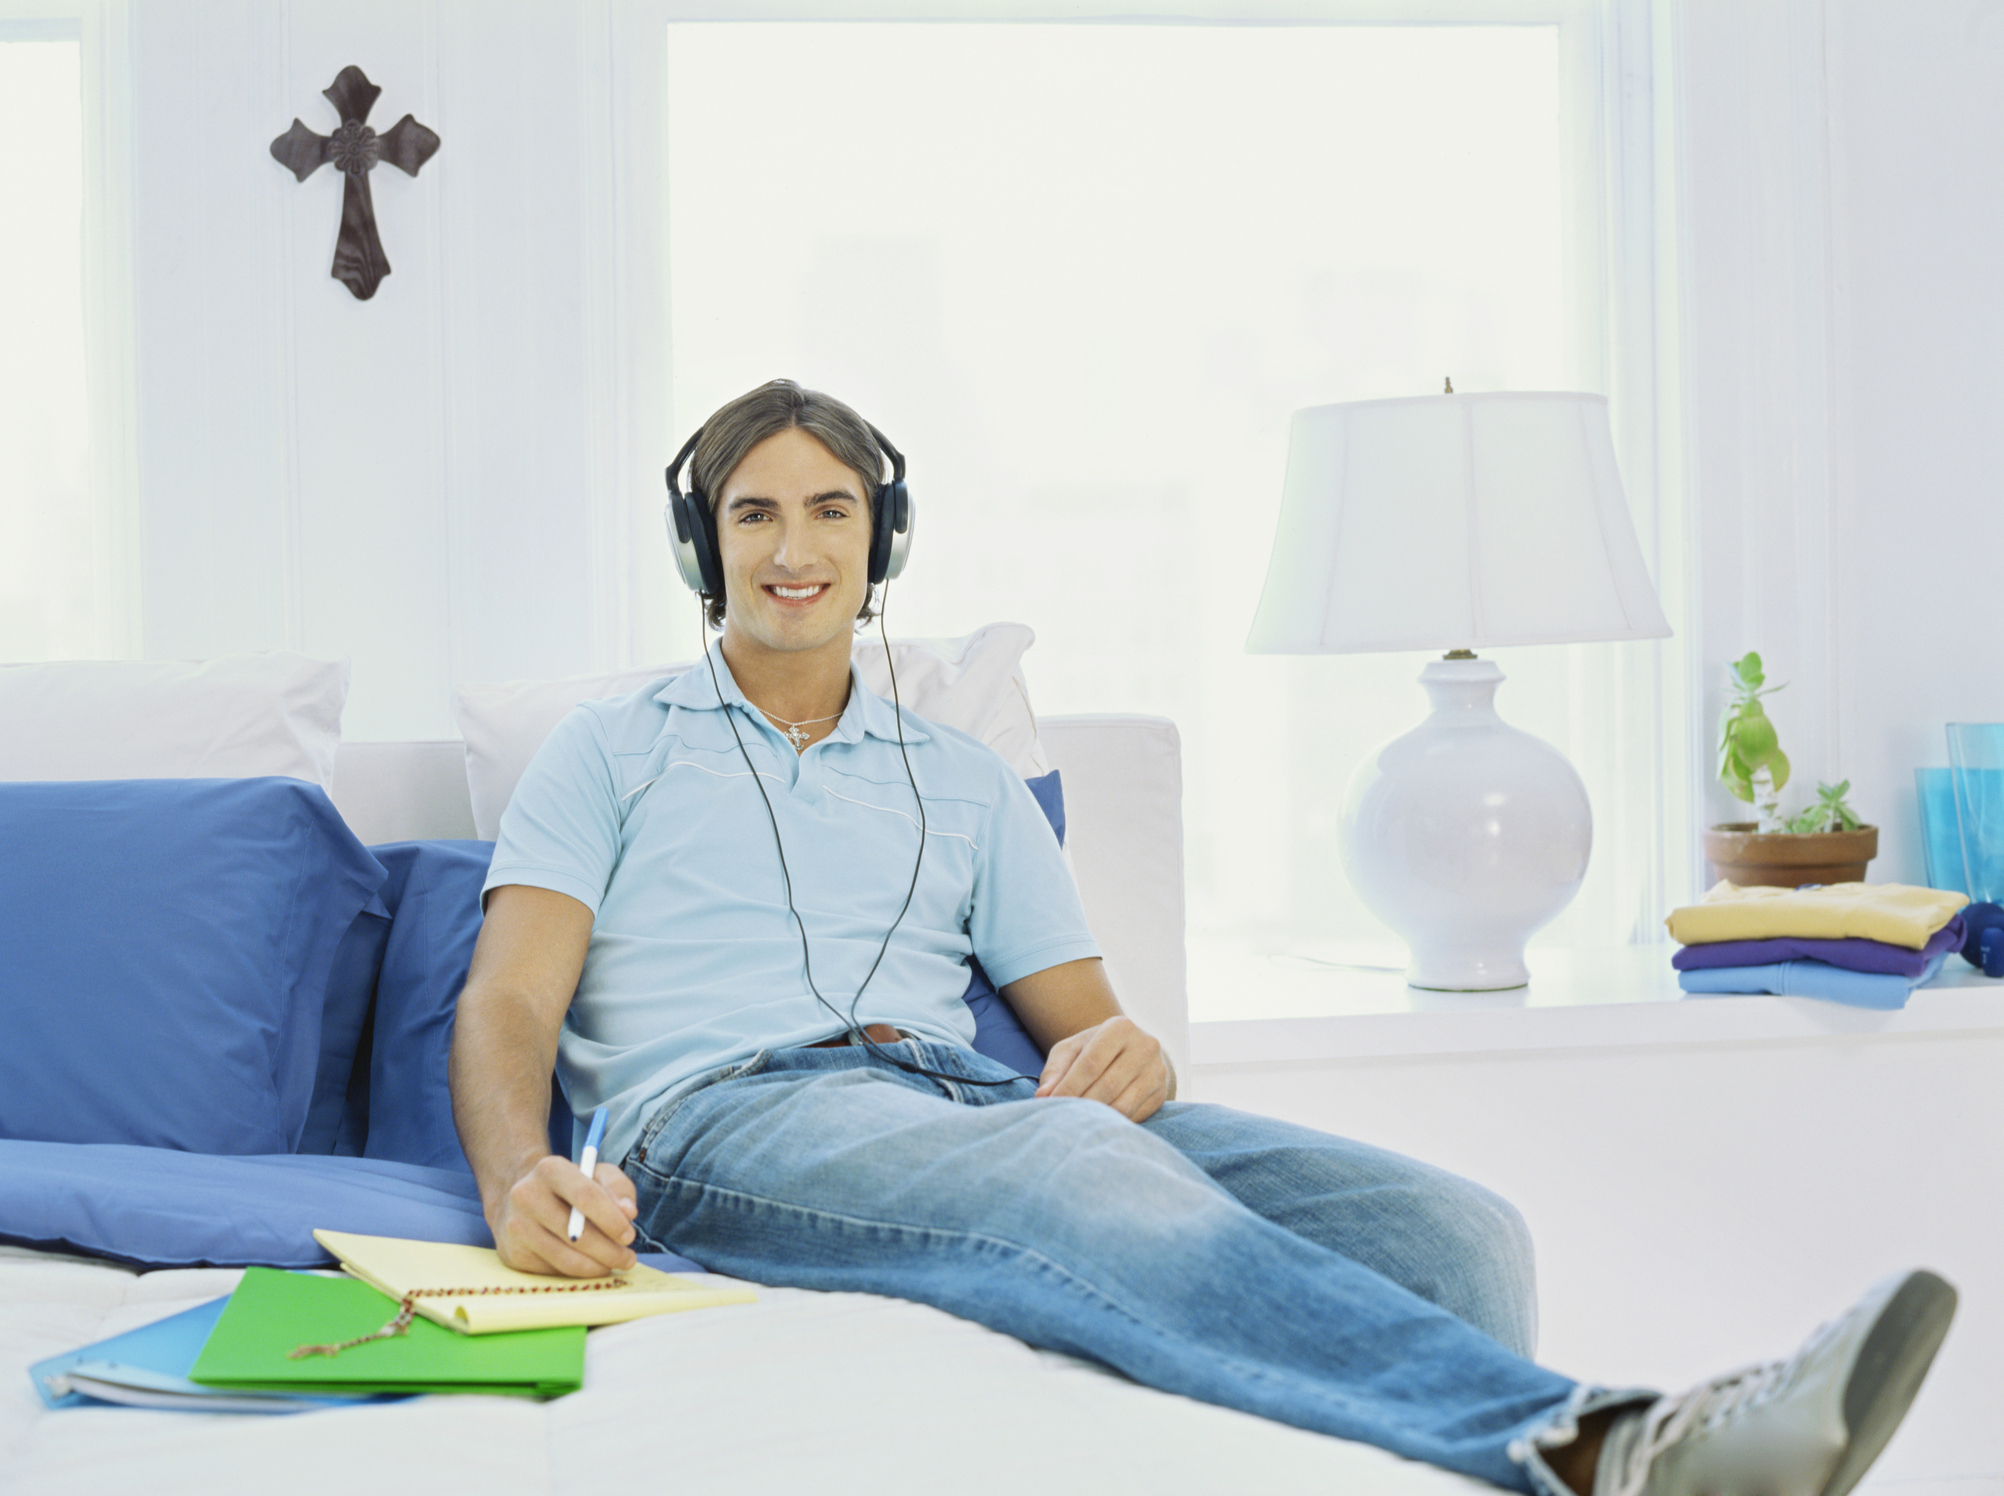 Best Sites for Free Christian Music Downloads | LoveToKnow